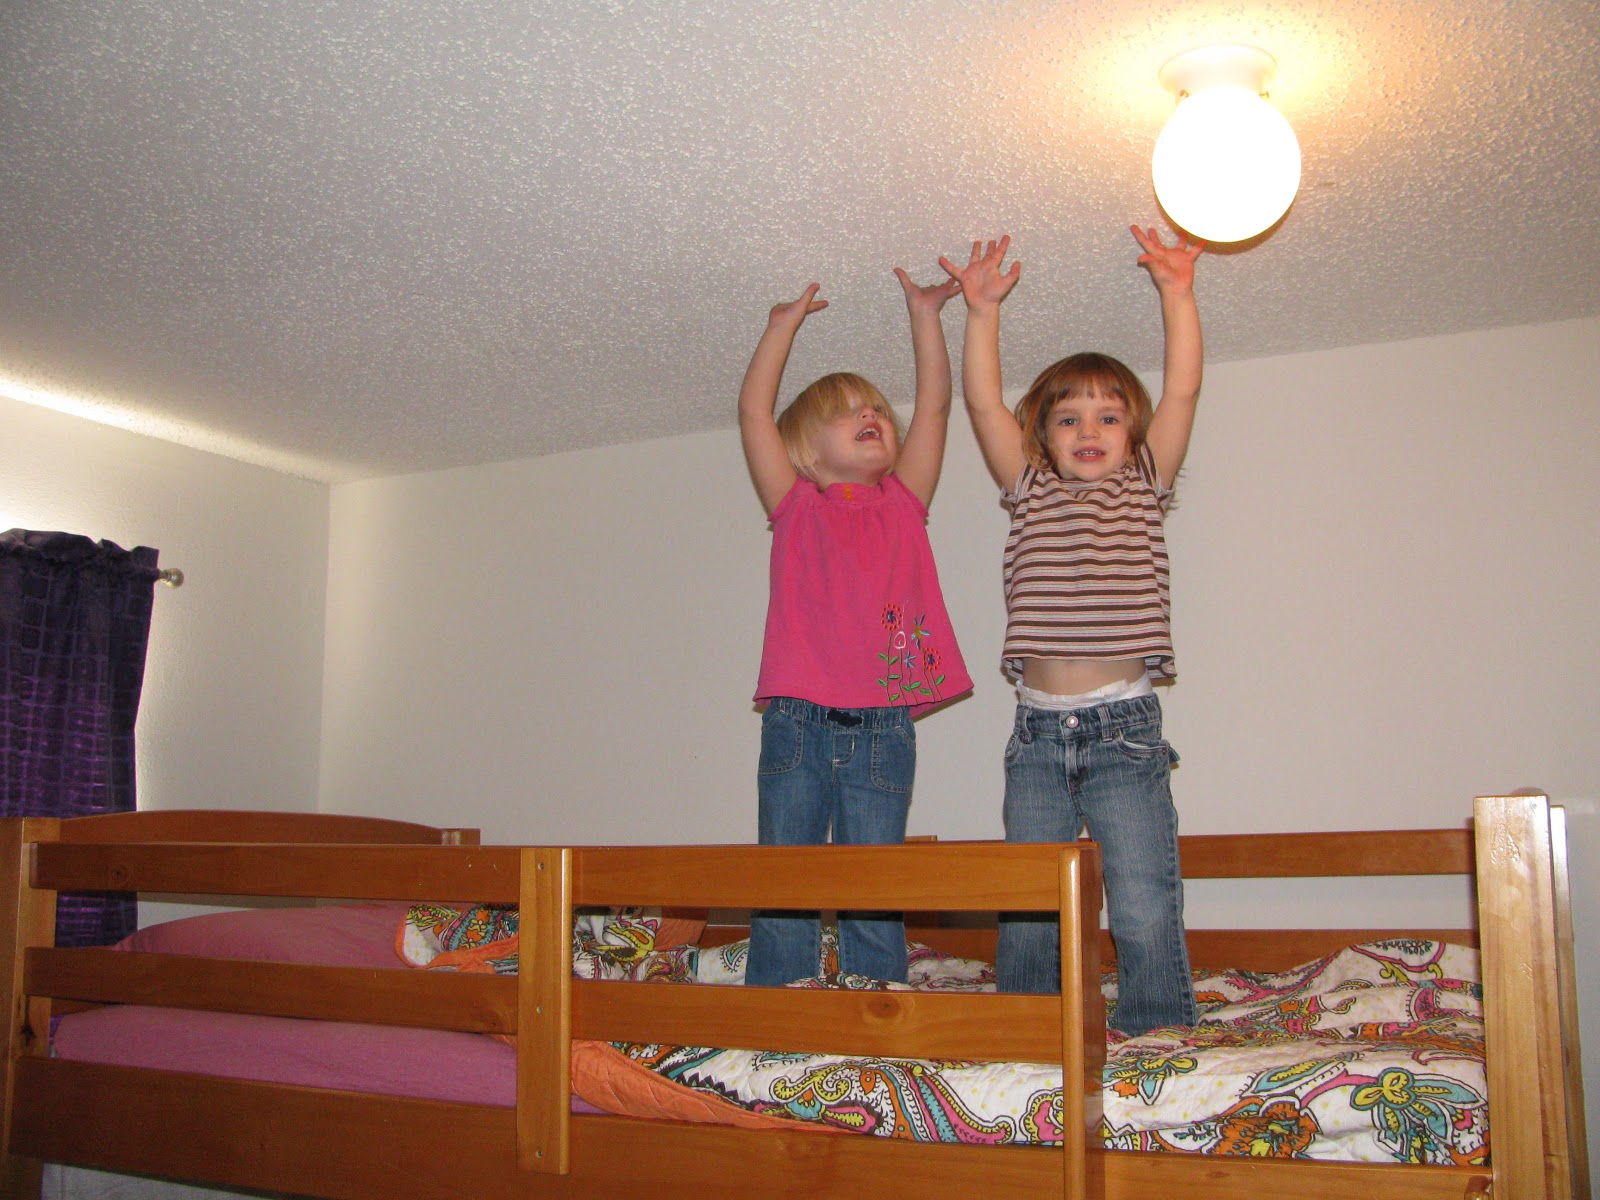 My Kids Showing How Much E They Have On The Top Bunk